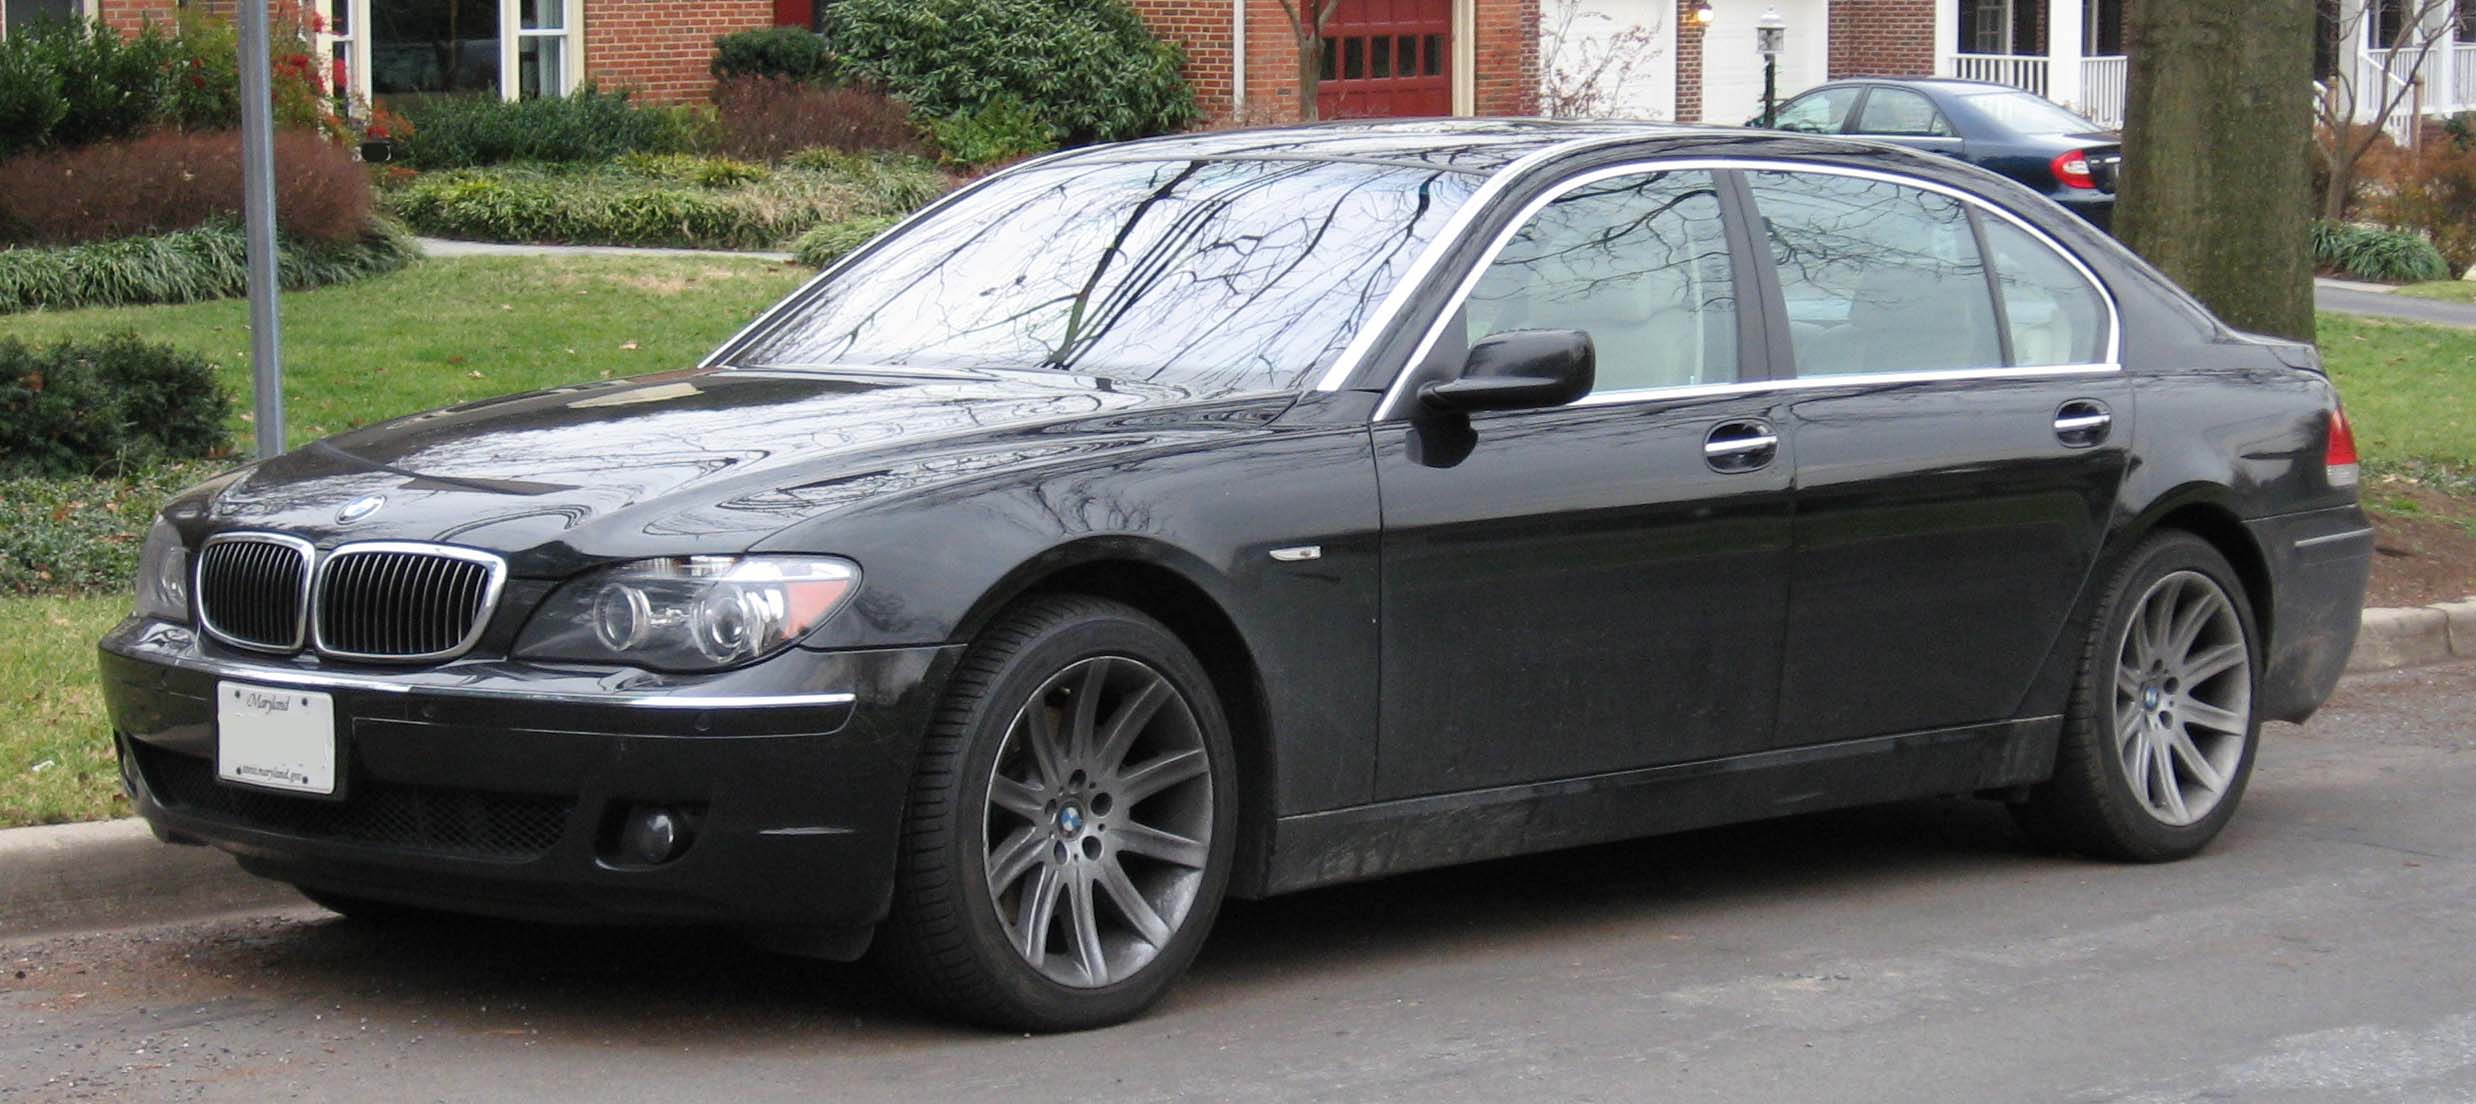 File:BMW 750i.jpg - Wikimedia Commons